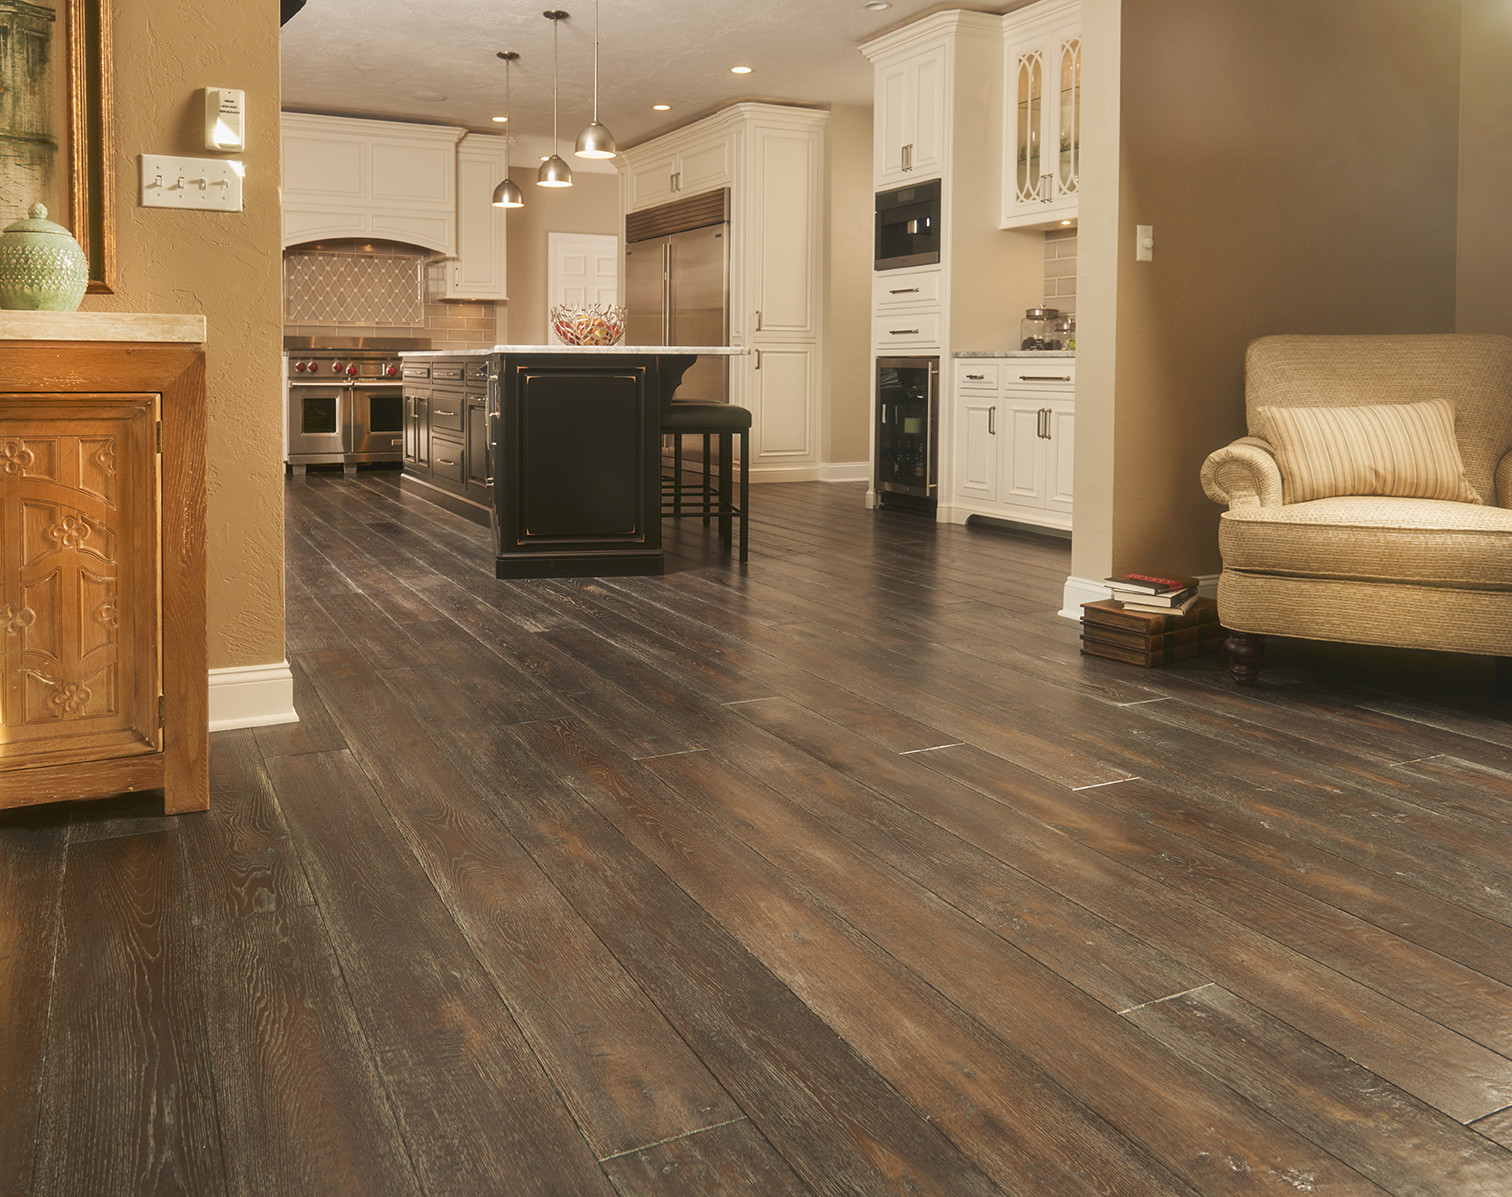 pergo hardwood flooring reviews of traditional living handscraped oak laminate reviews 0060474314014 a intended for western pa traditional home peachey hardwood flooring